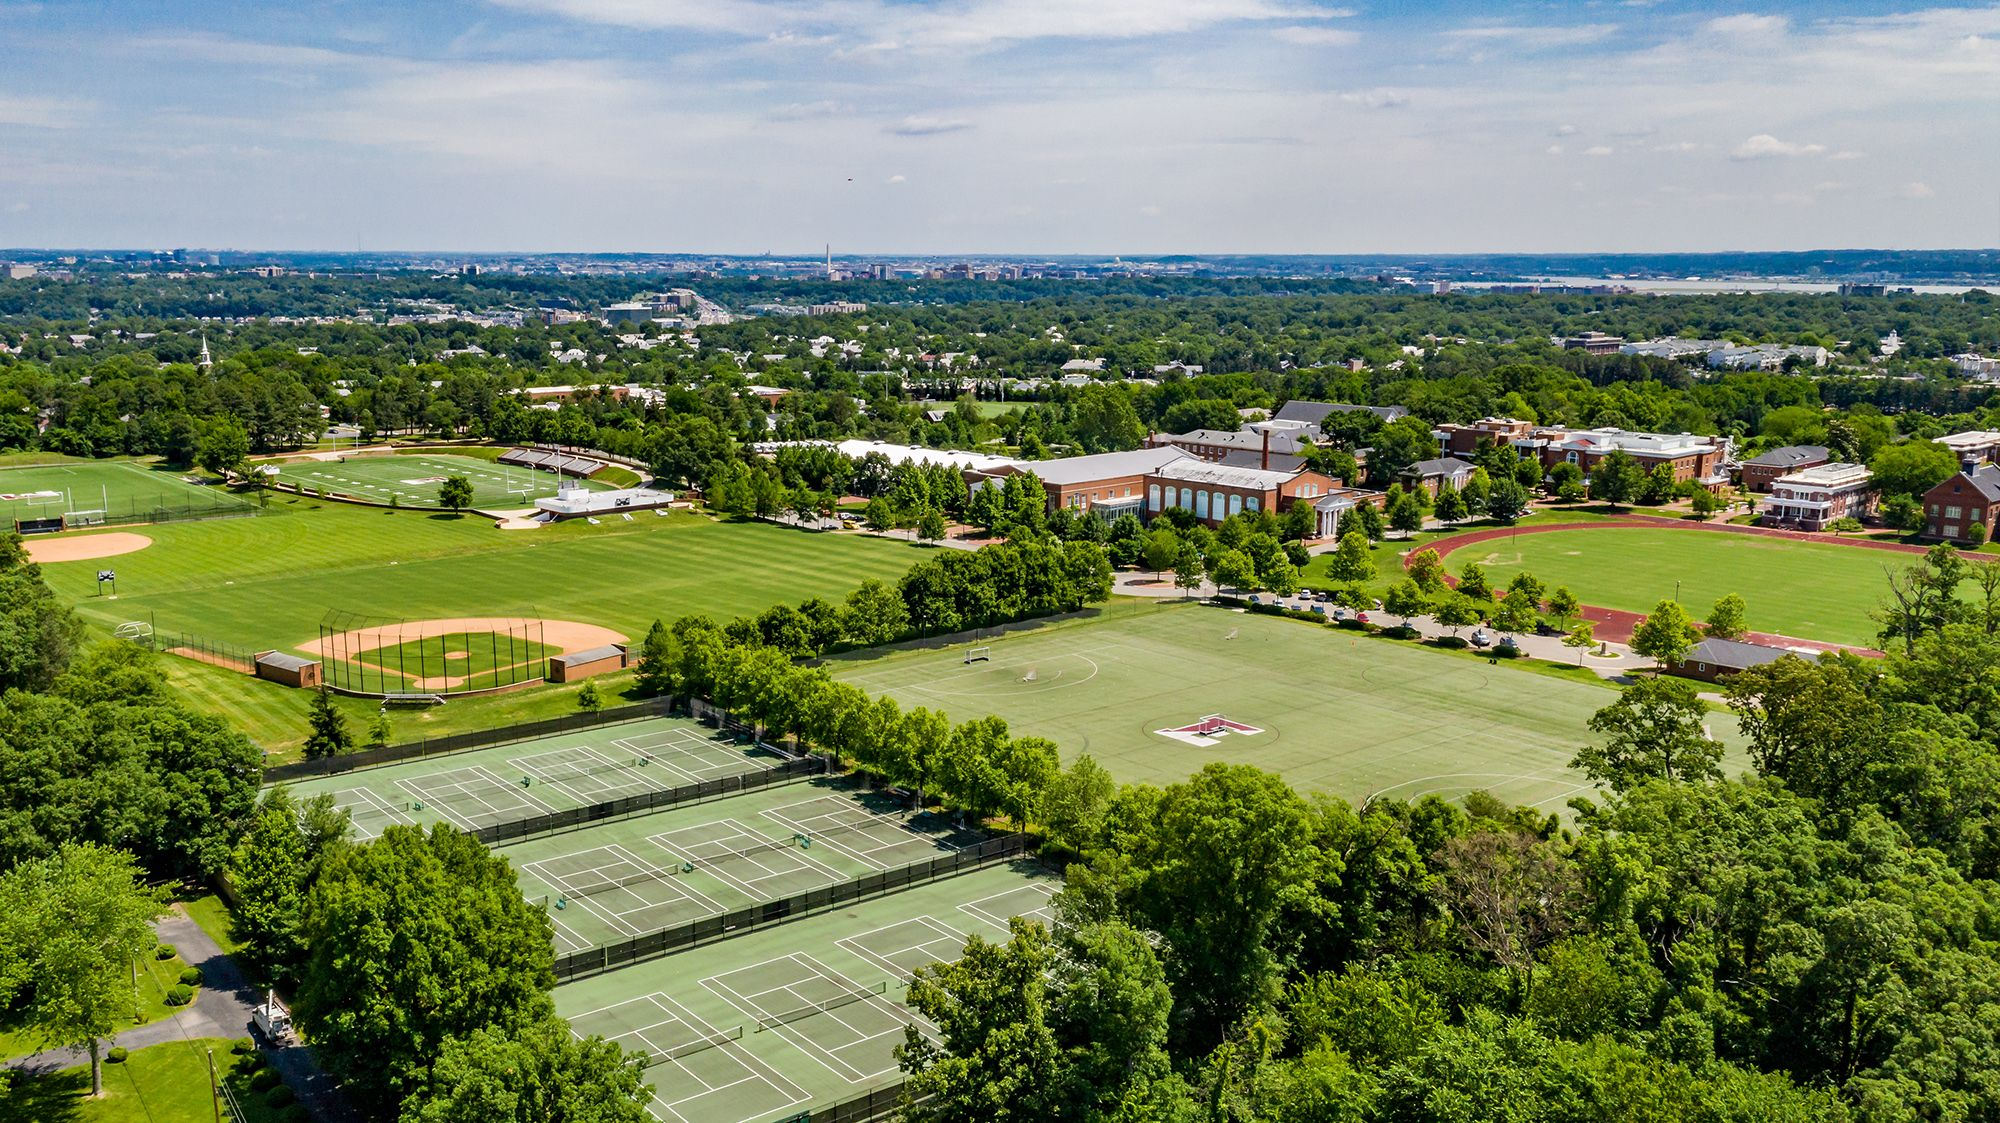 Shuford Tennis Courts, Greenway, and the Cooper Dawson Diamond